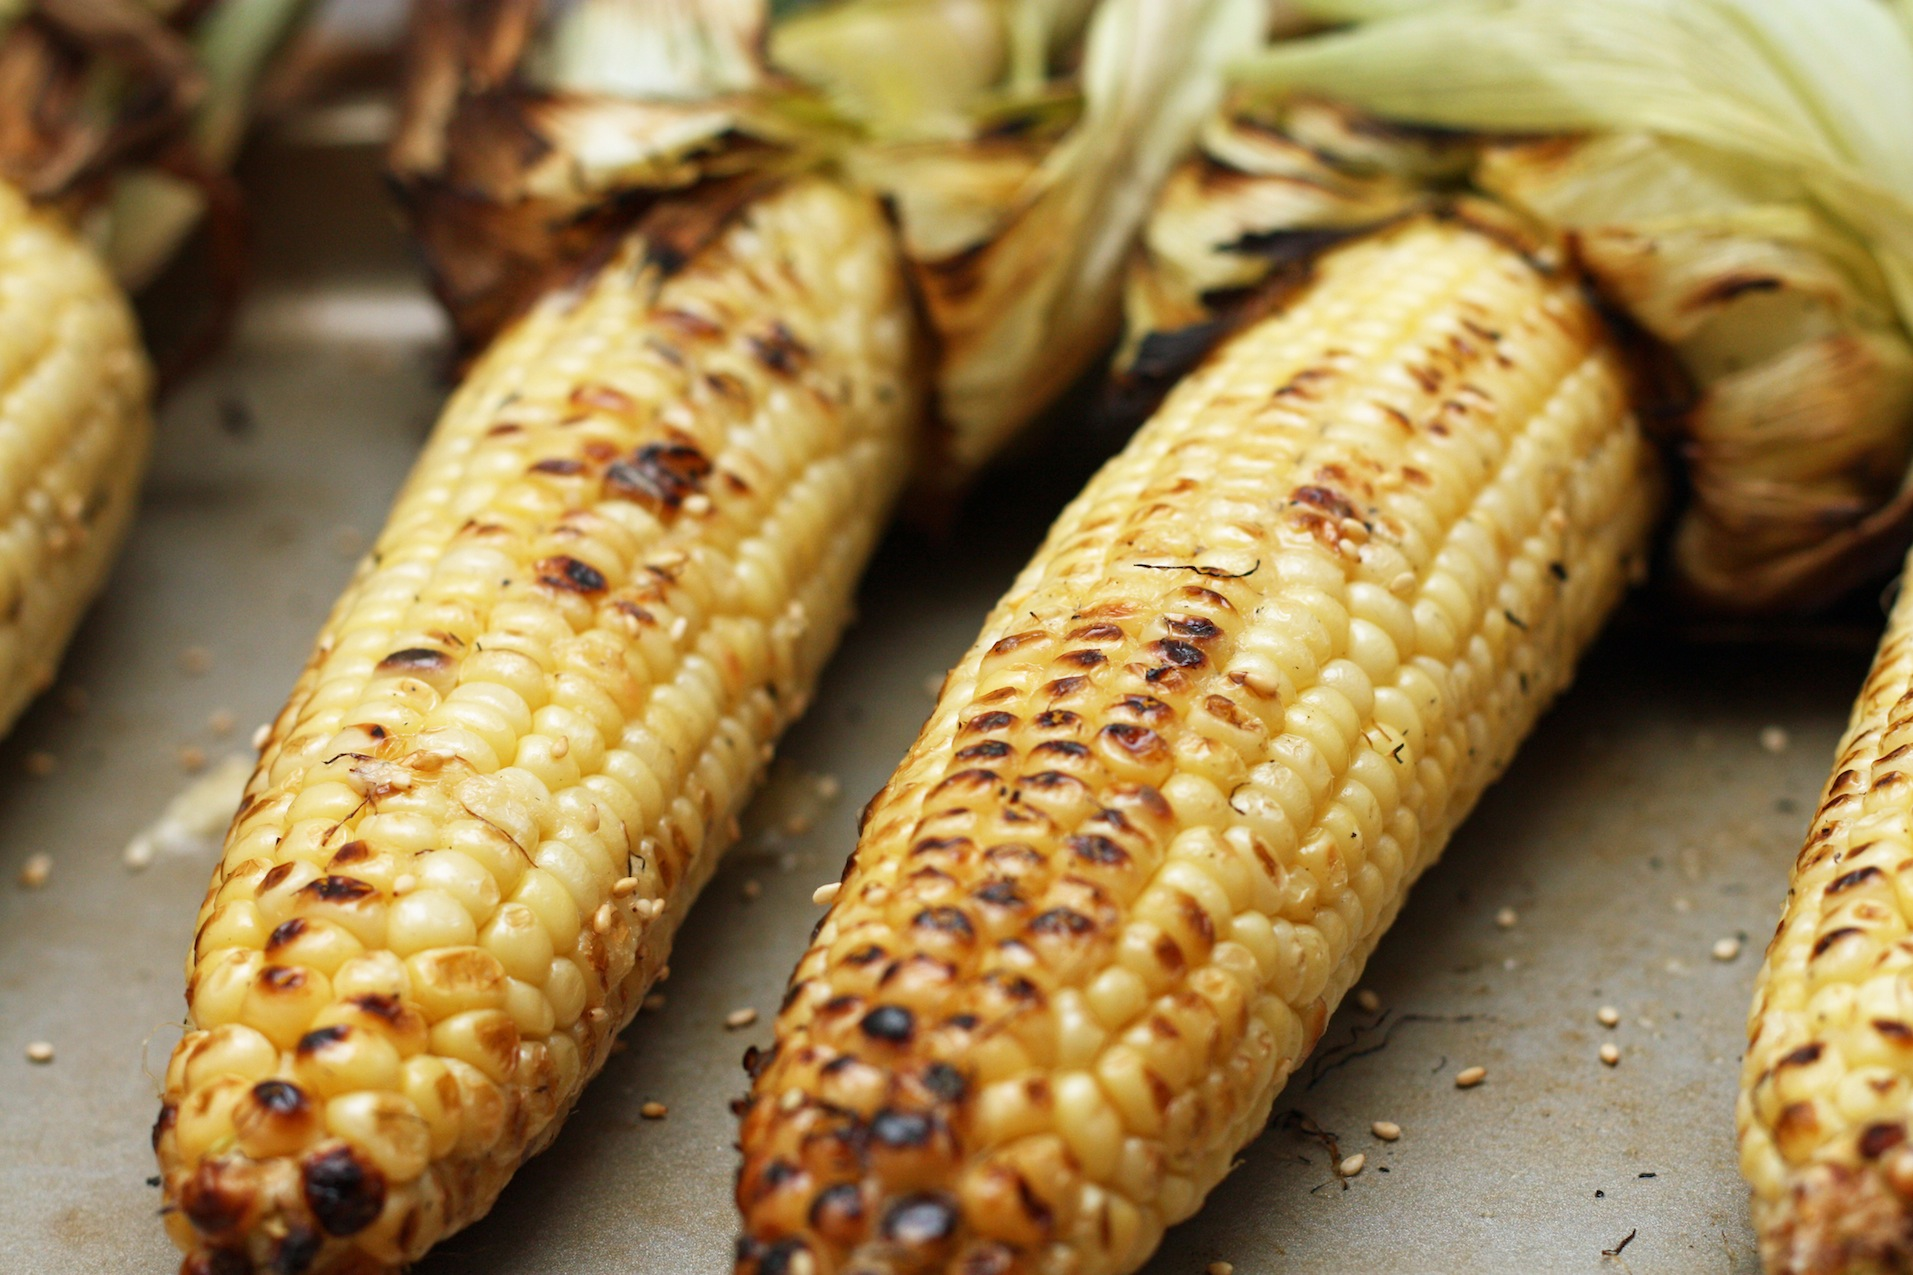 Grilled Corn + Miso Butter by Malibu Kitchen | Epicurious Community ...